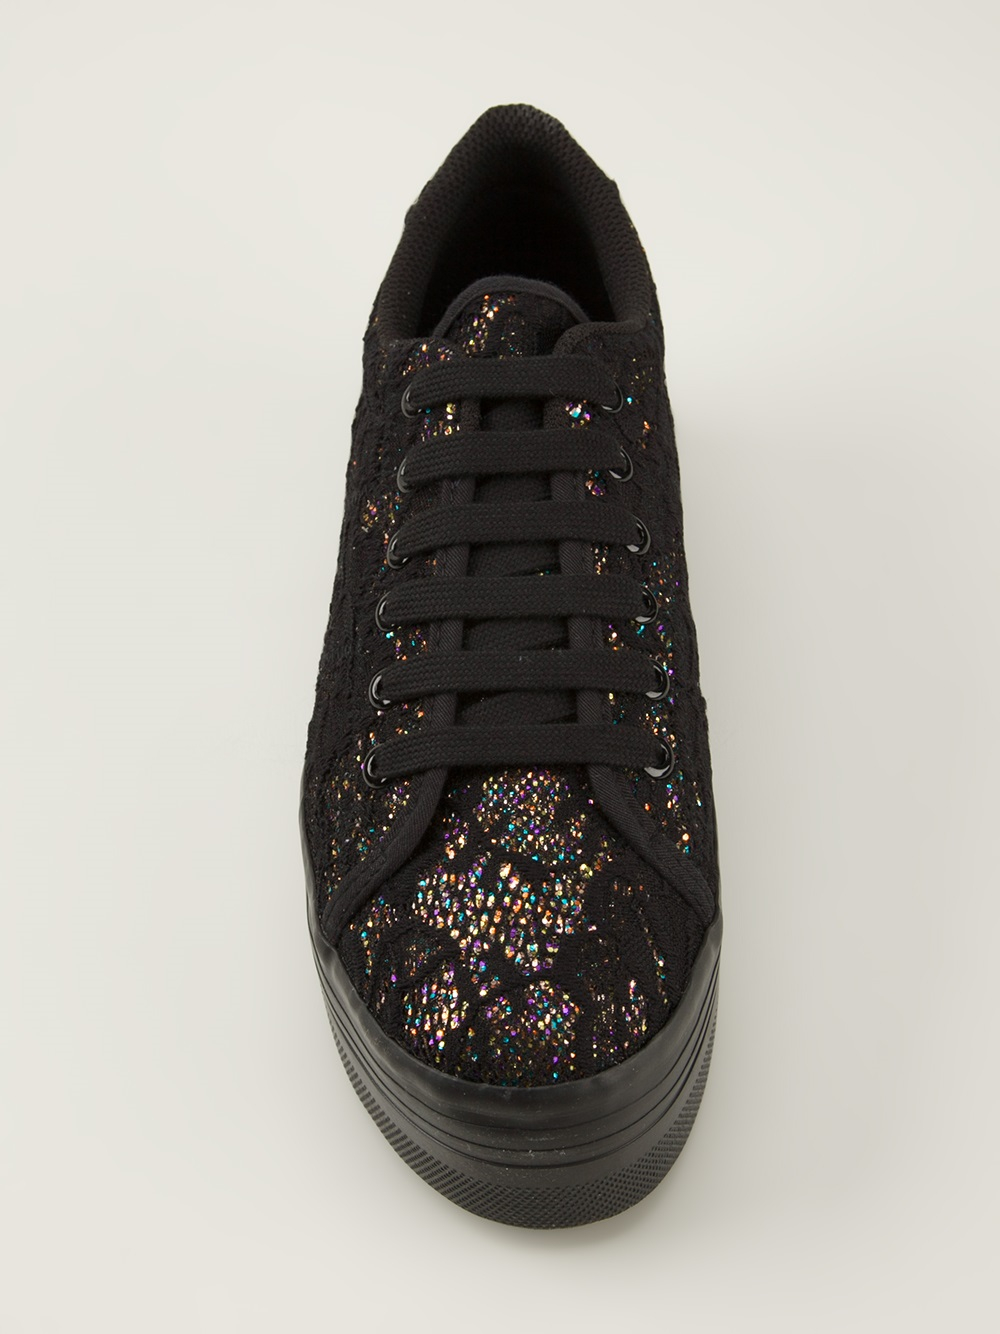 3a5bc5250b44 Jeffrey Campbell Zomg Glitter Platform Trainer in Black - Lyst